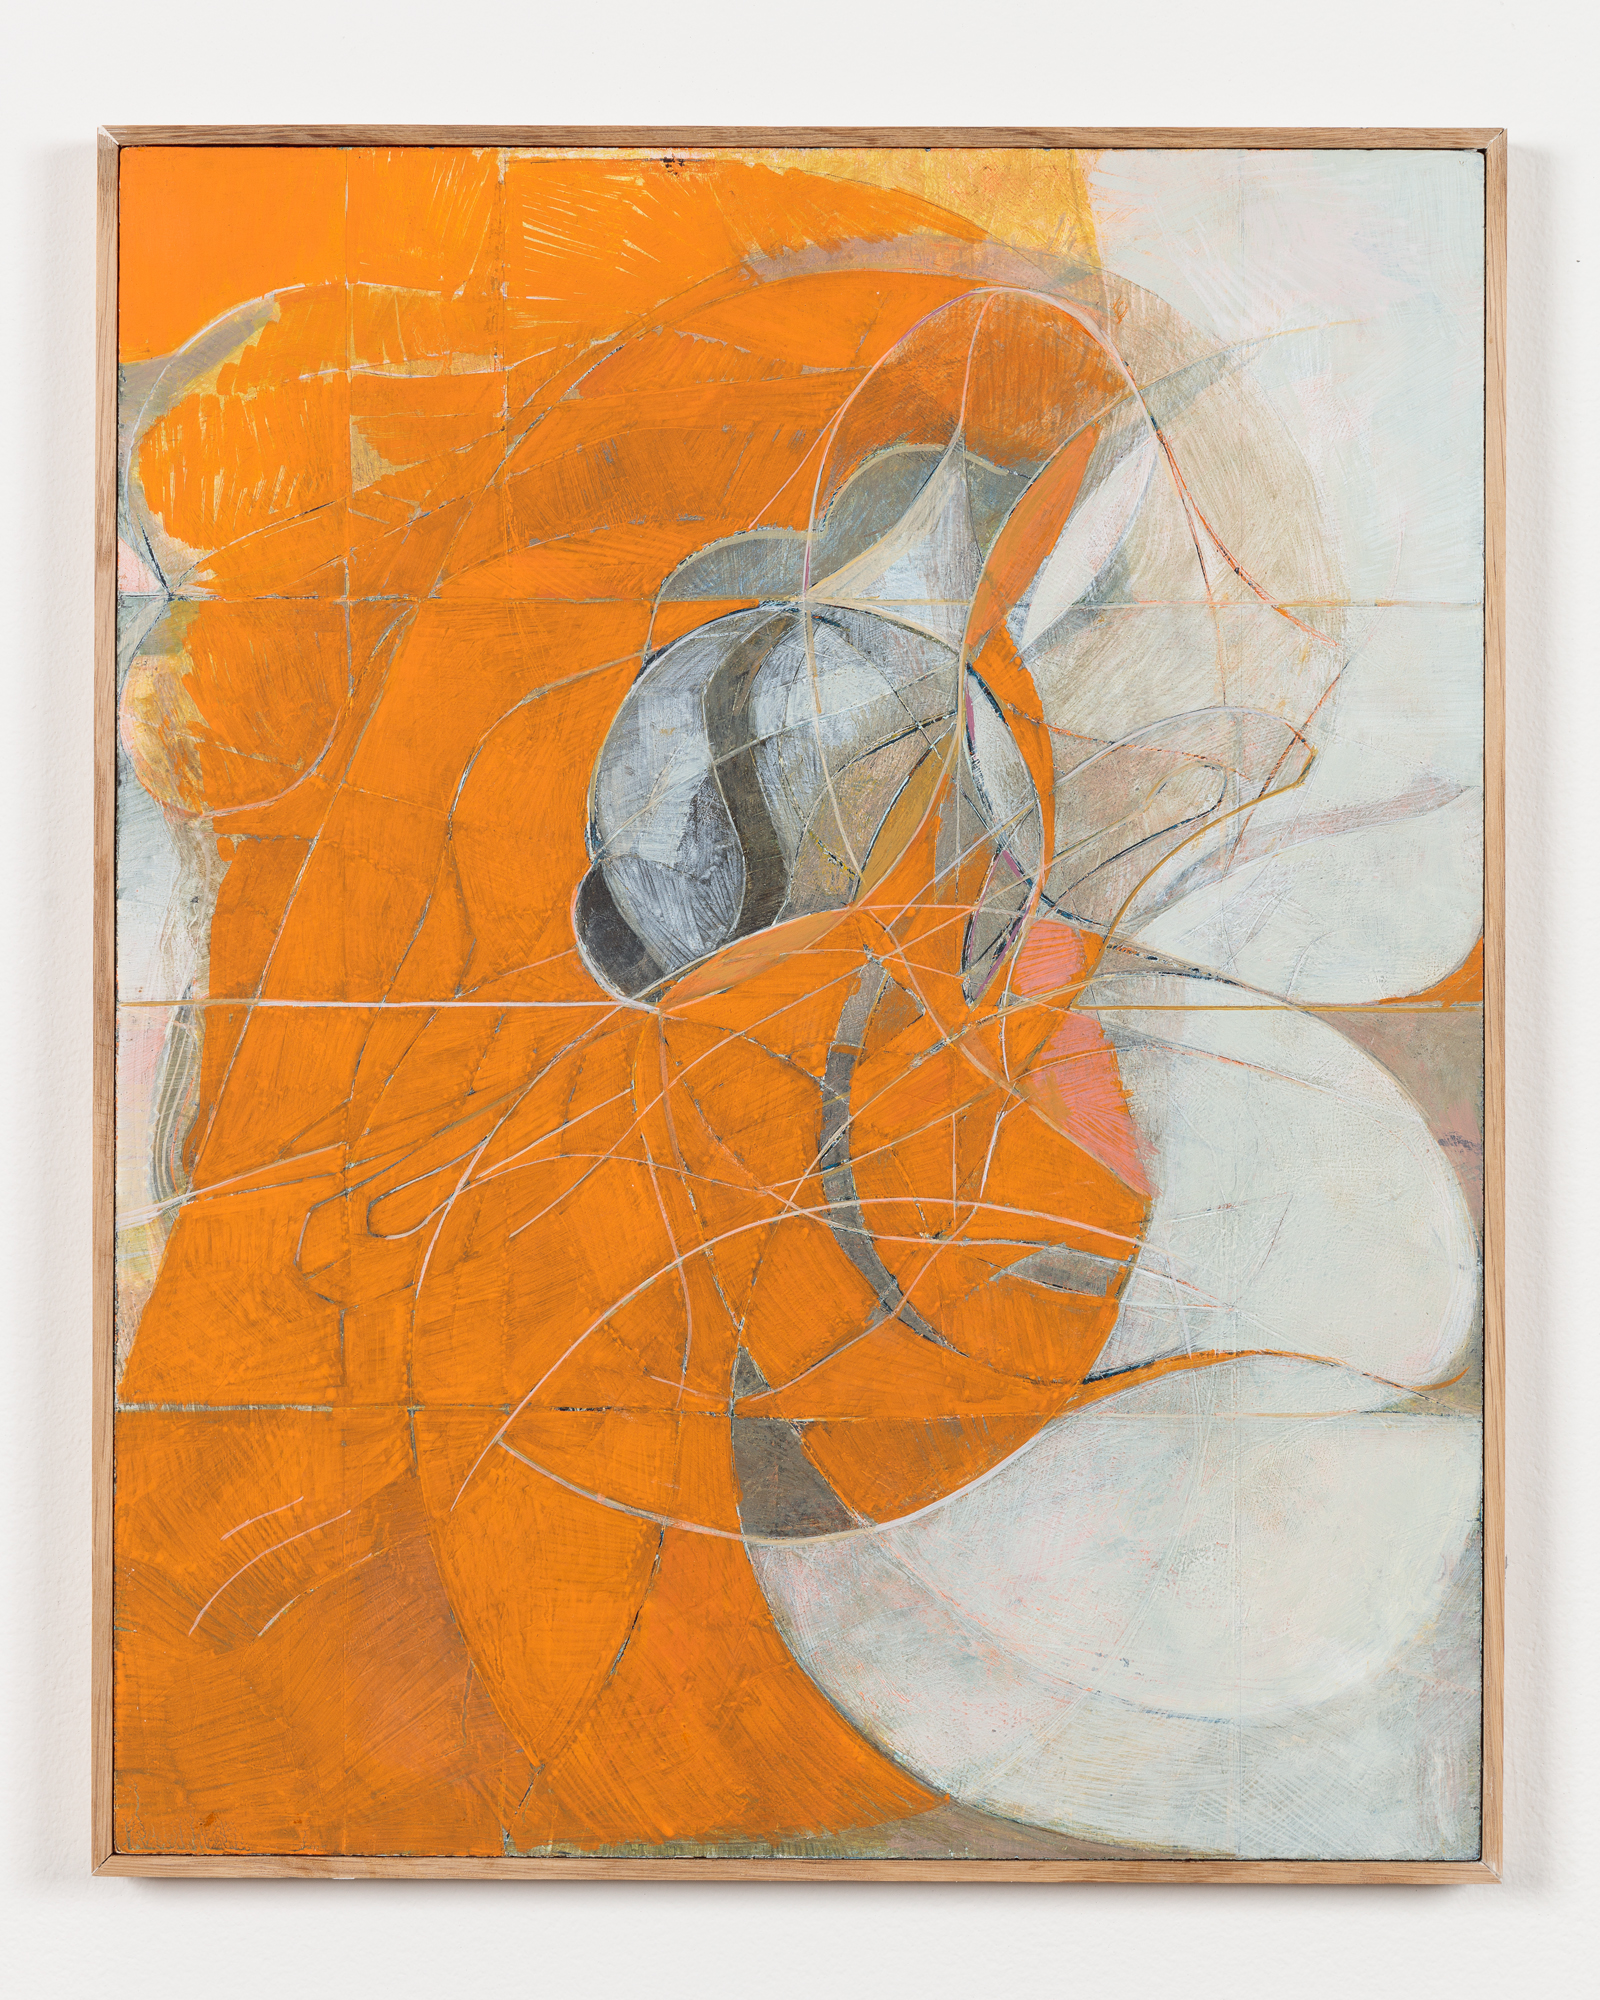 Nicholas Byrne, Past life, orange, 2015, oil on gessoed panel with artists frame, 50 x 40 x 2 cm, 19 3/4 x 15 3/4 x 3/4 ins. Nicholas Byrne